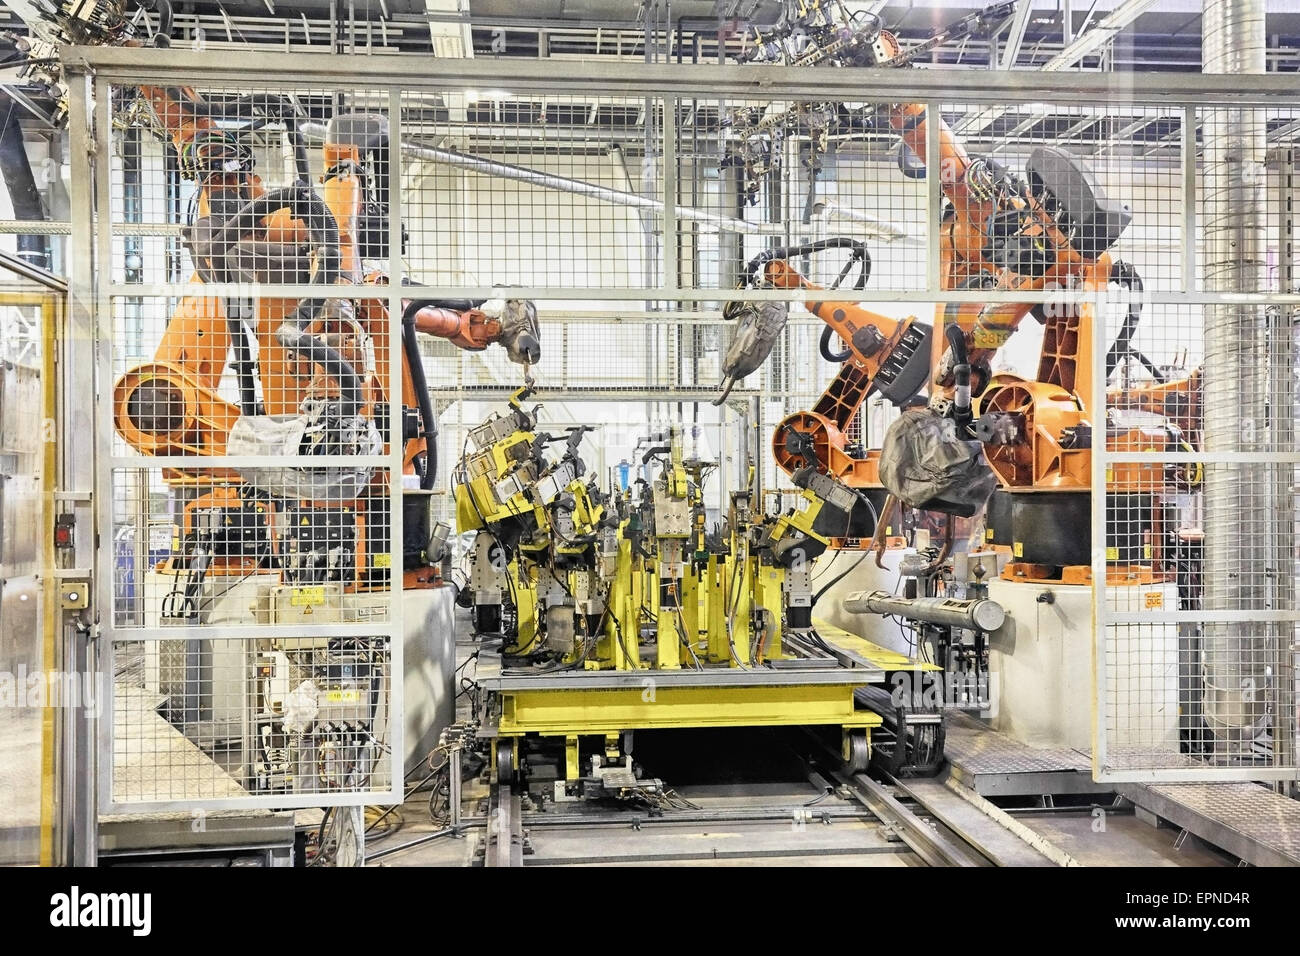 robots in a car factory - Stock Image